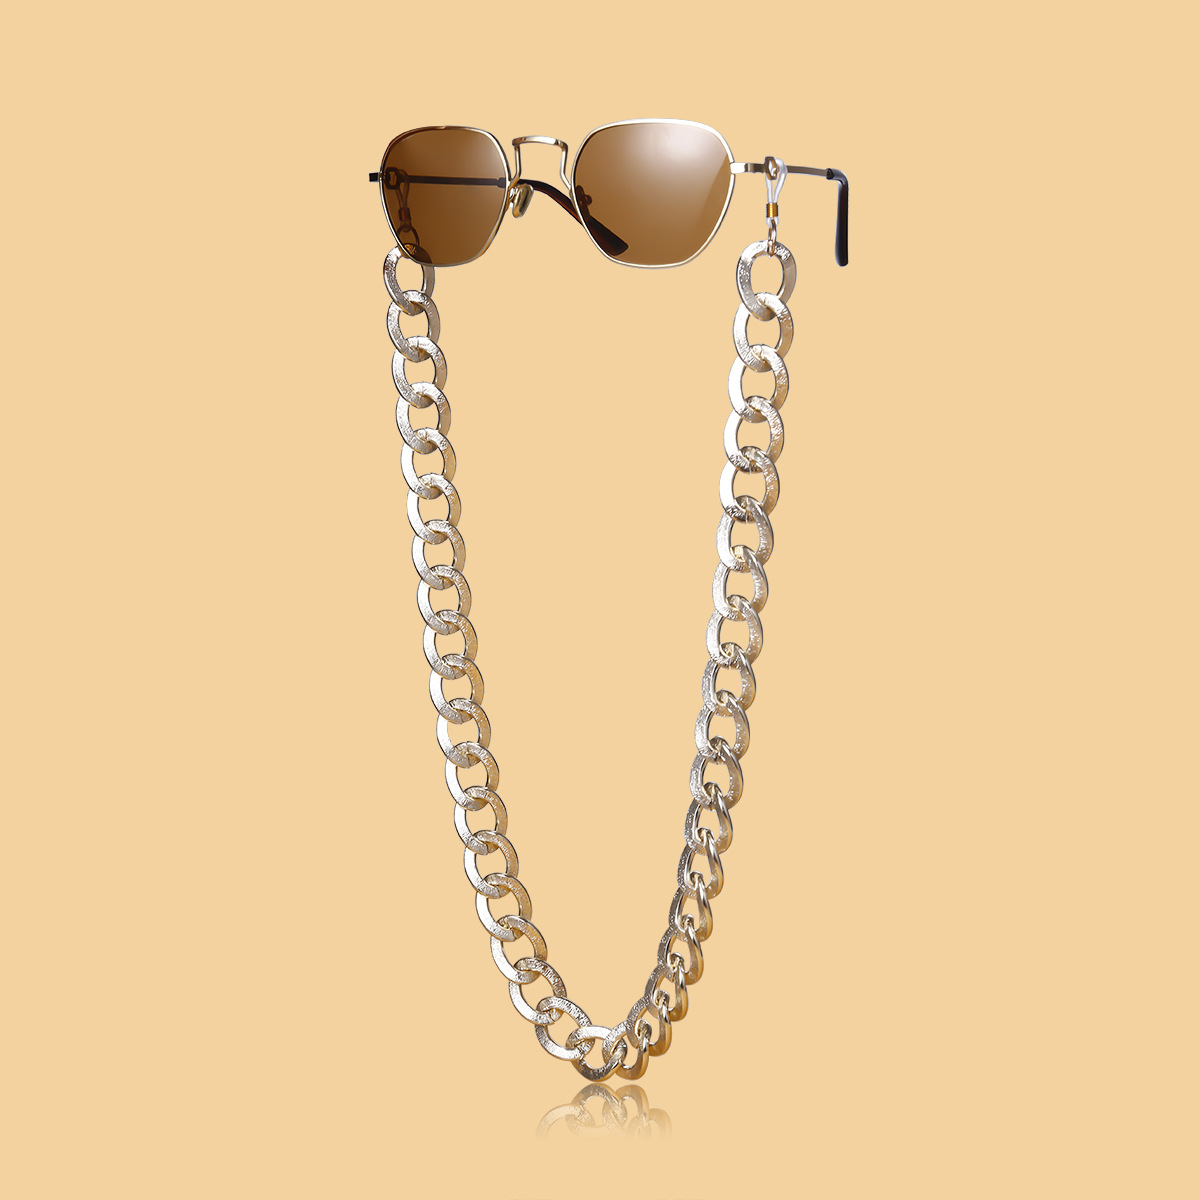 Fashion metal accessories U-shaped grinding chain thick chain glasses chain wholesale Nihaojewelry NHXR211852